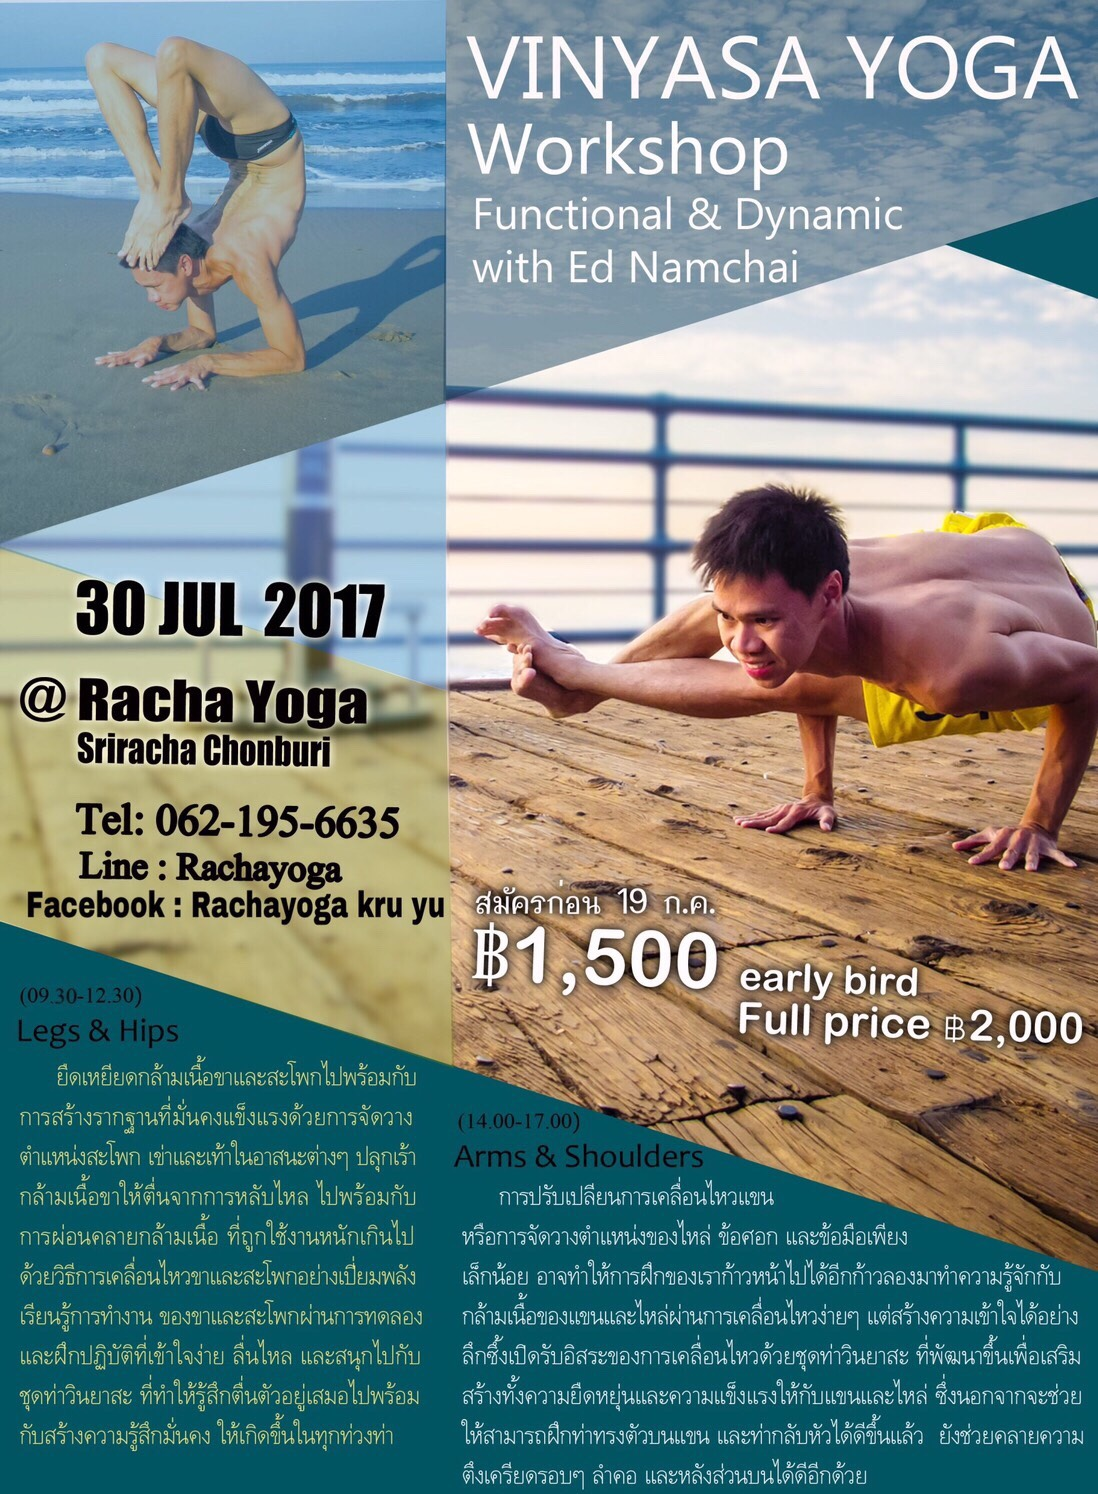 Vinyasa Yoga Workshop: Functional & Dynamic with Ed Namchai